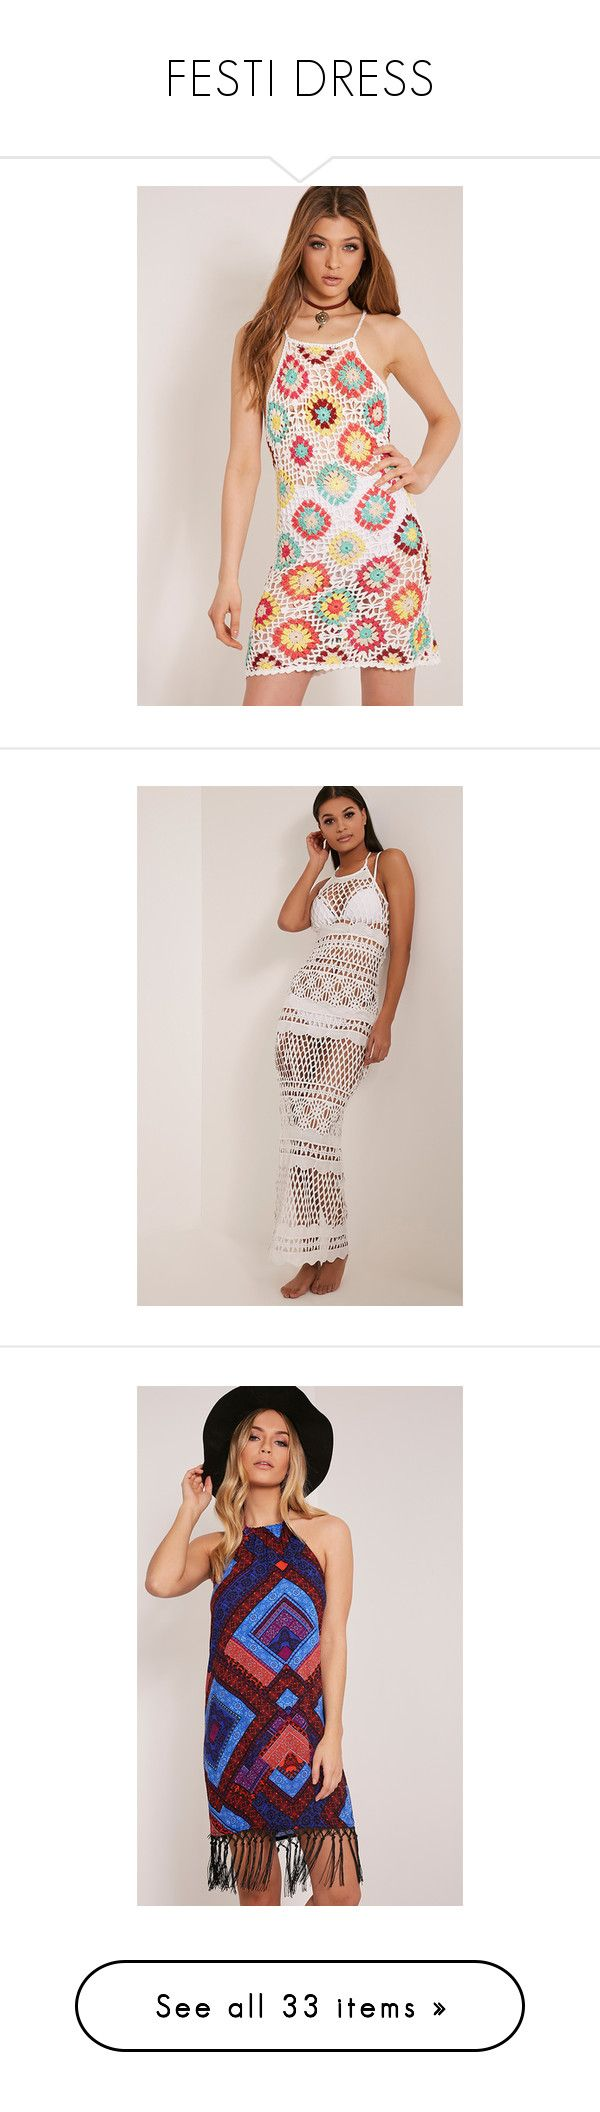 """FESTI DRESS"" by officialplt ❤ liked on Polyvore featuring dresses, white, white crochet dress, patchwork dress, white dress, white macrame dress, white day dress, hippy dress, crochet maxi dress and sexy crochet dress"